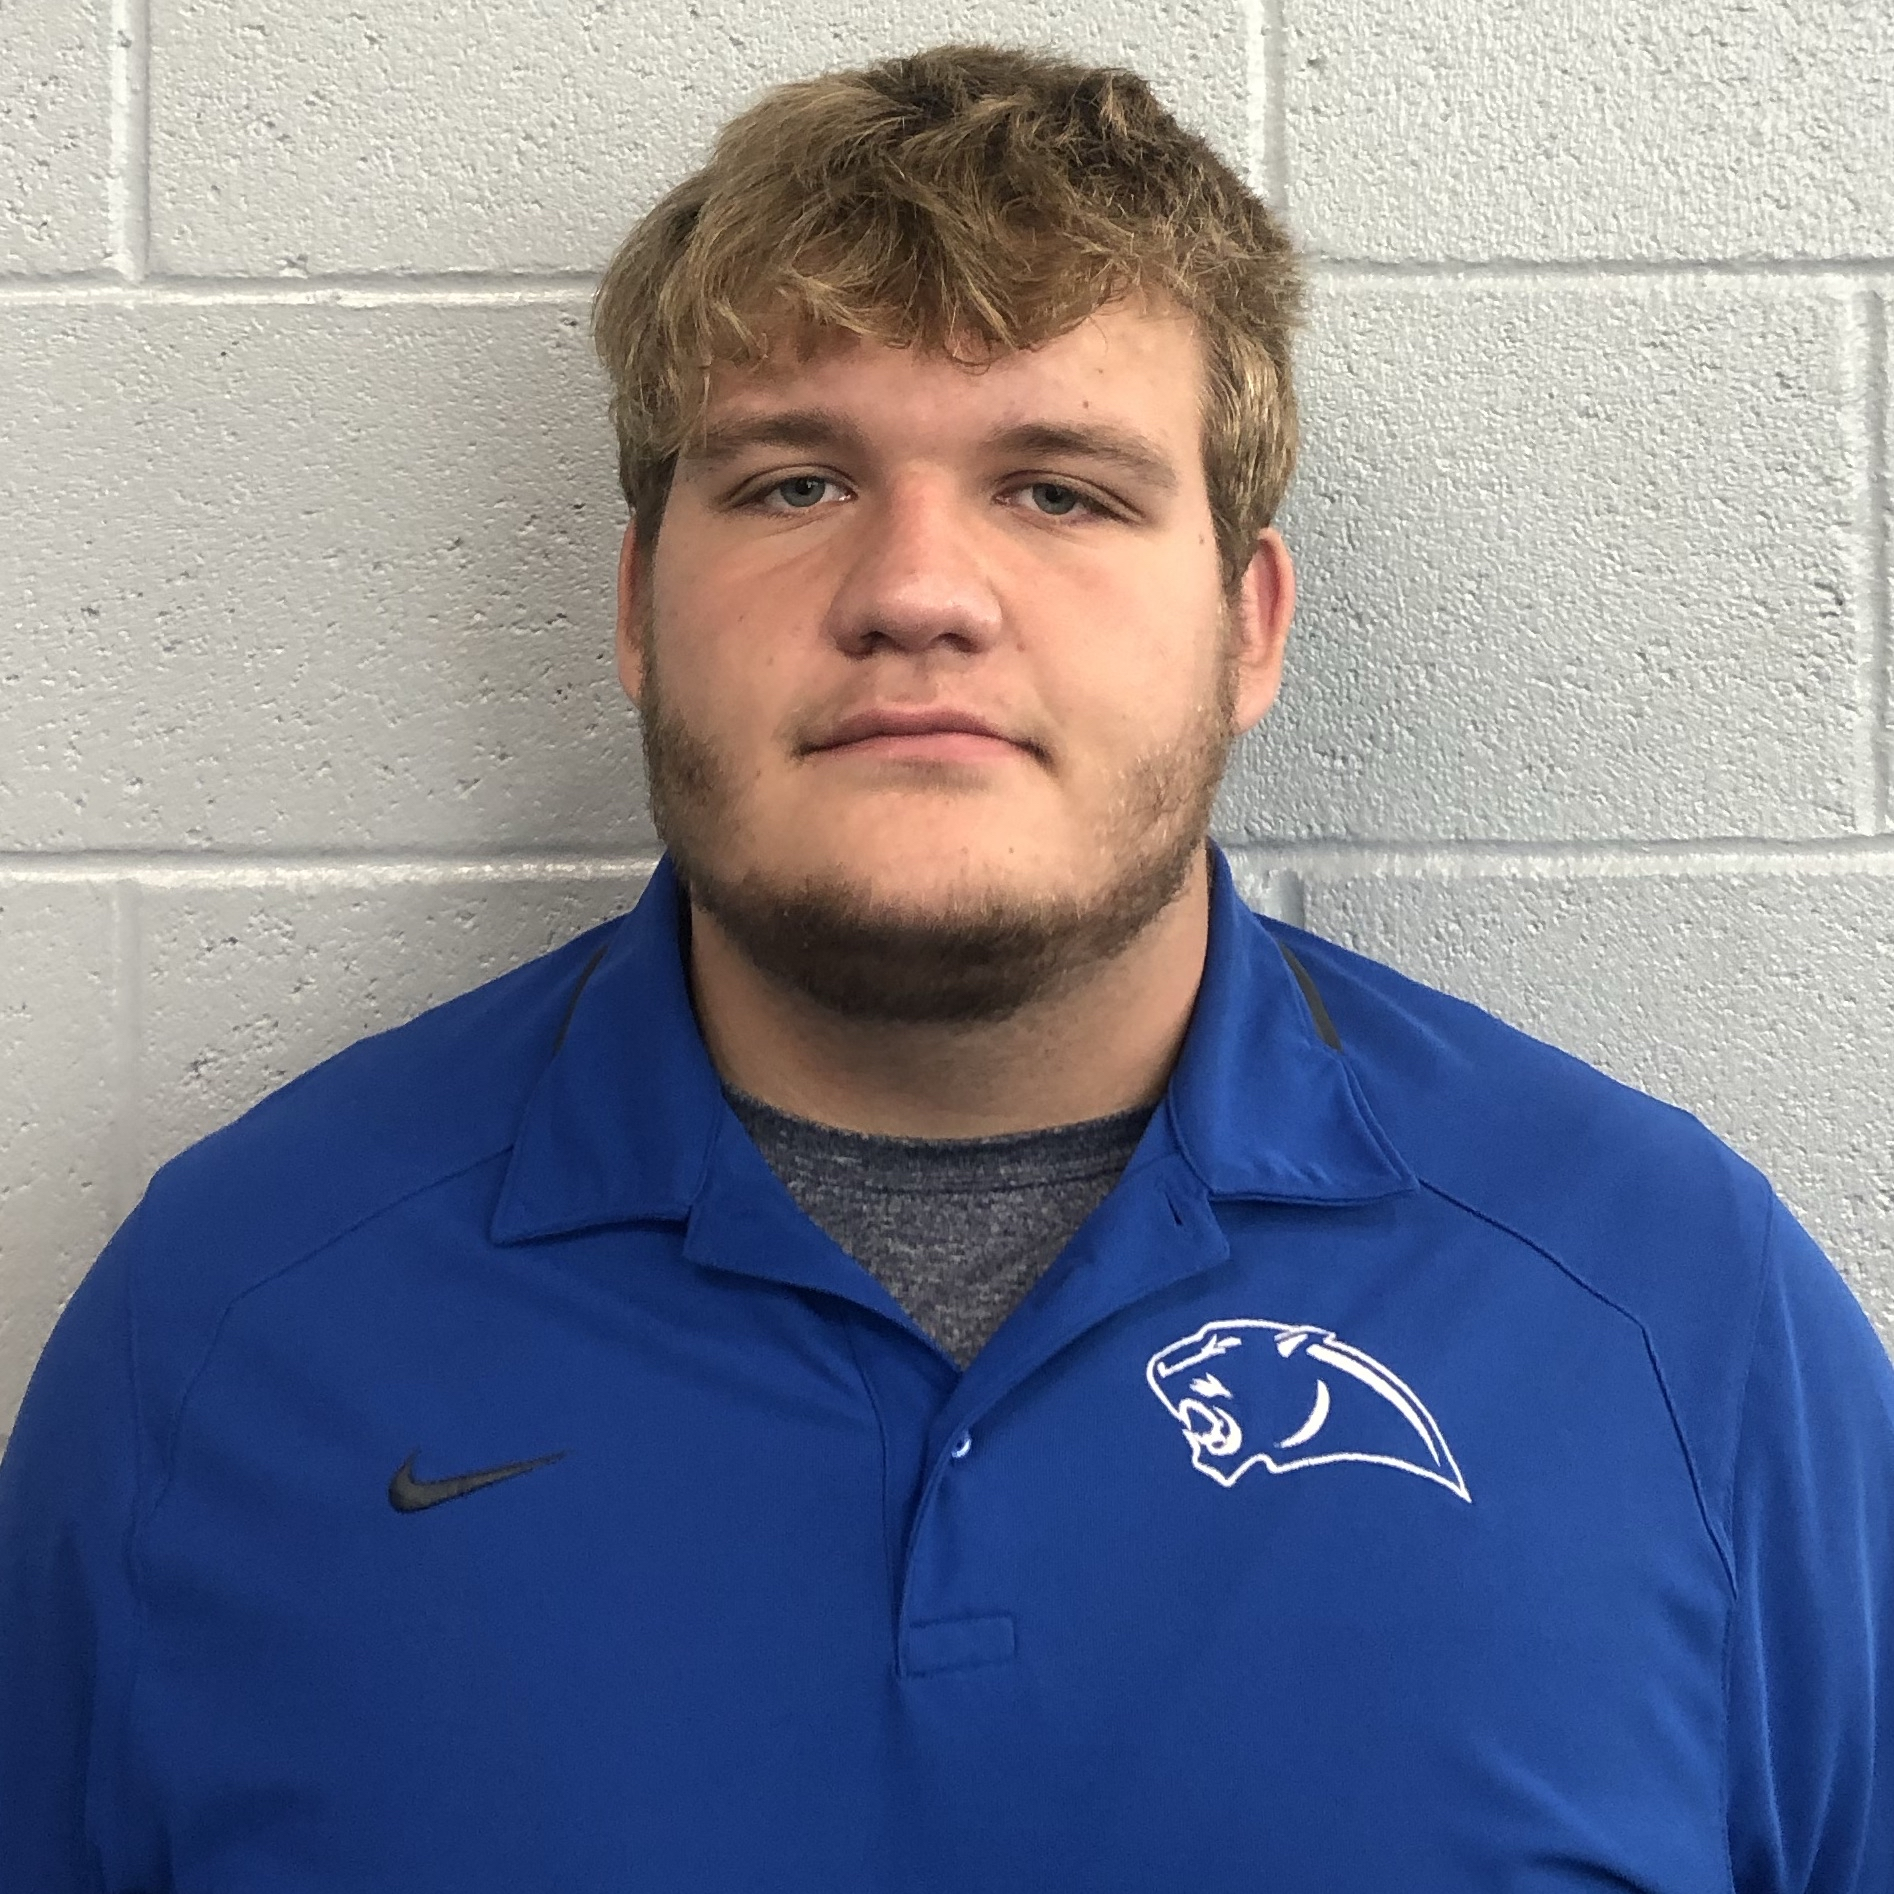 roster photo for Dustin Hall